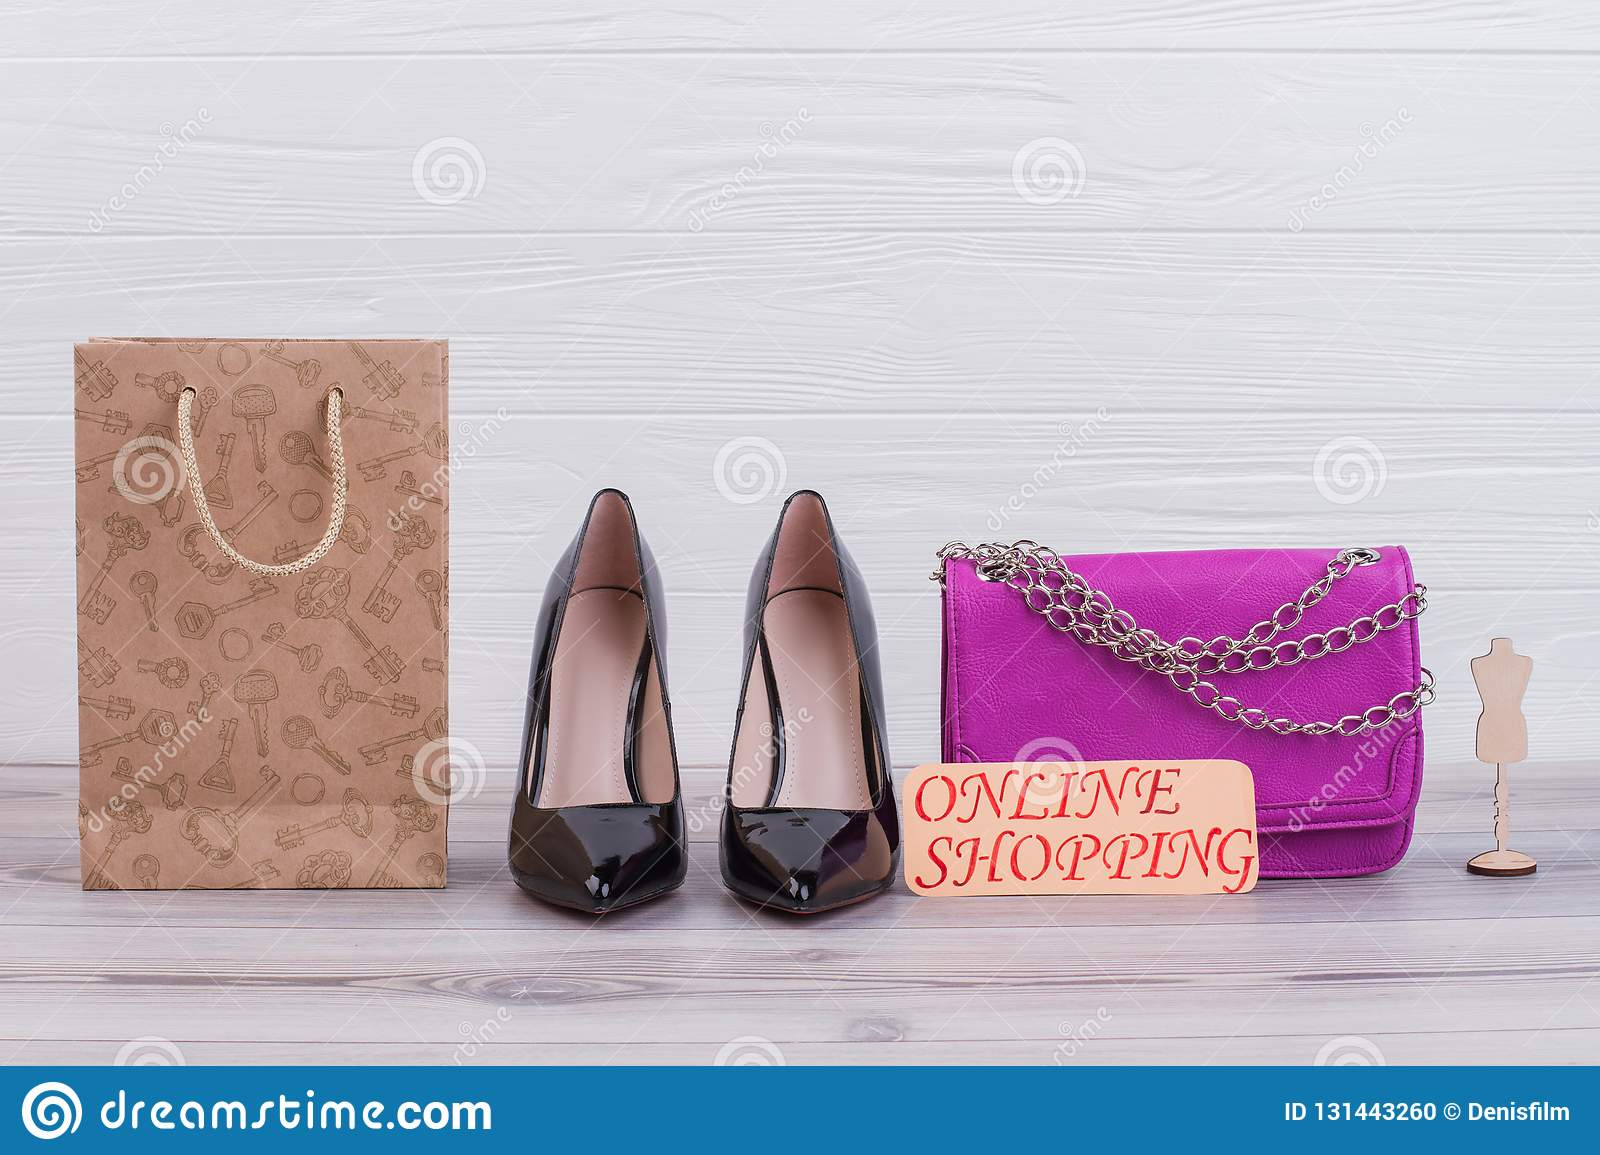 12559c7c4cc Female Leather Bag And Shoes. Stock Photo - Image of fashion ...